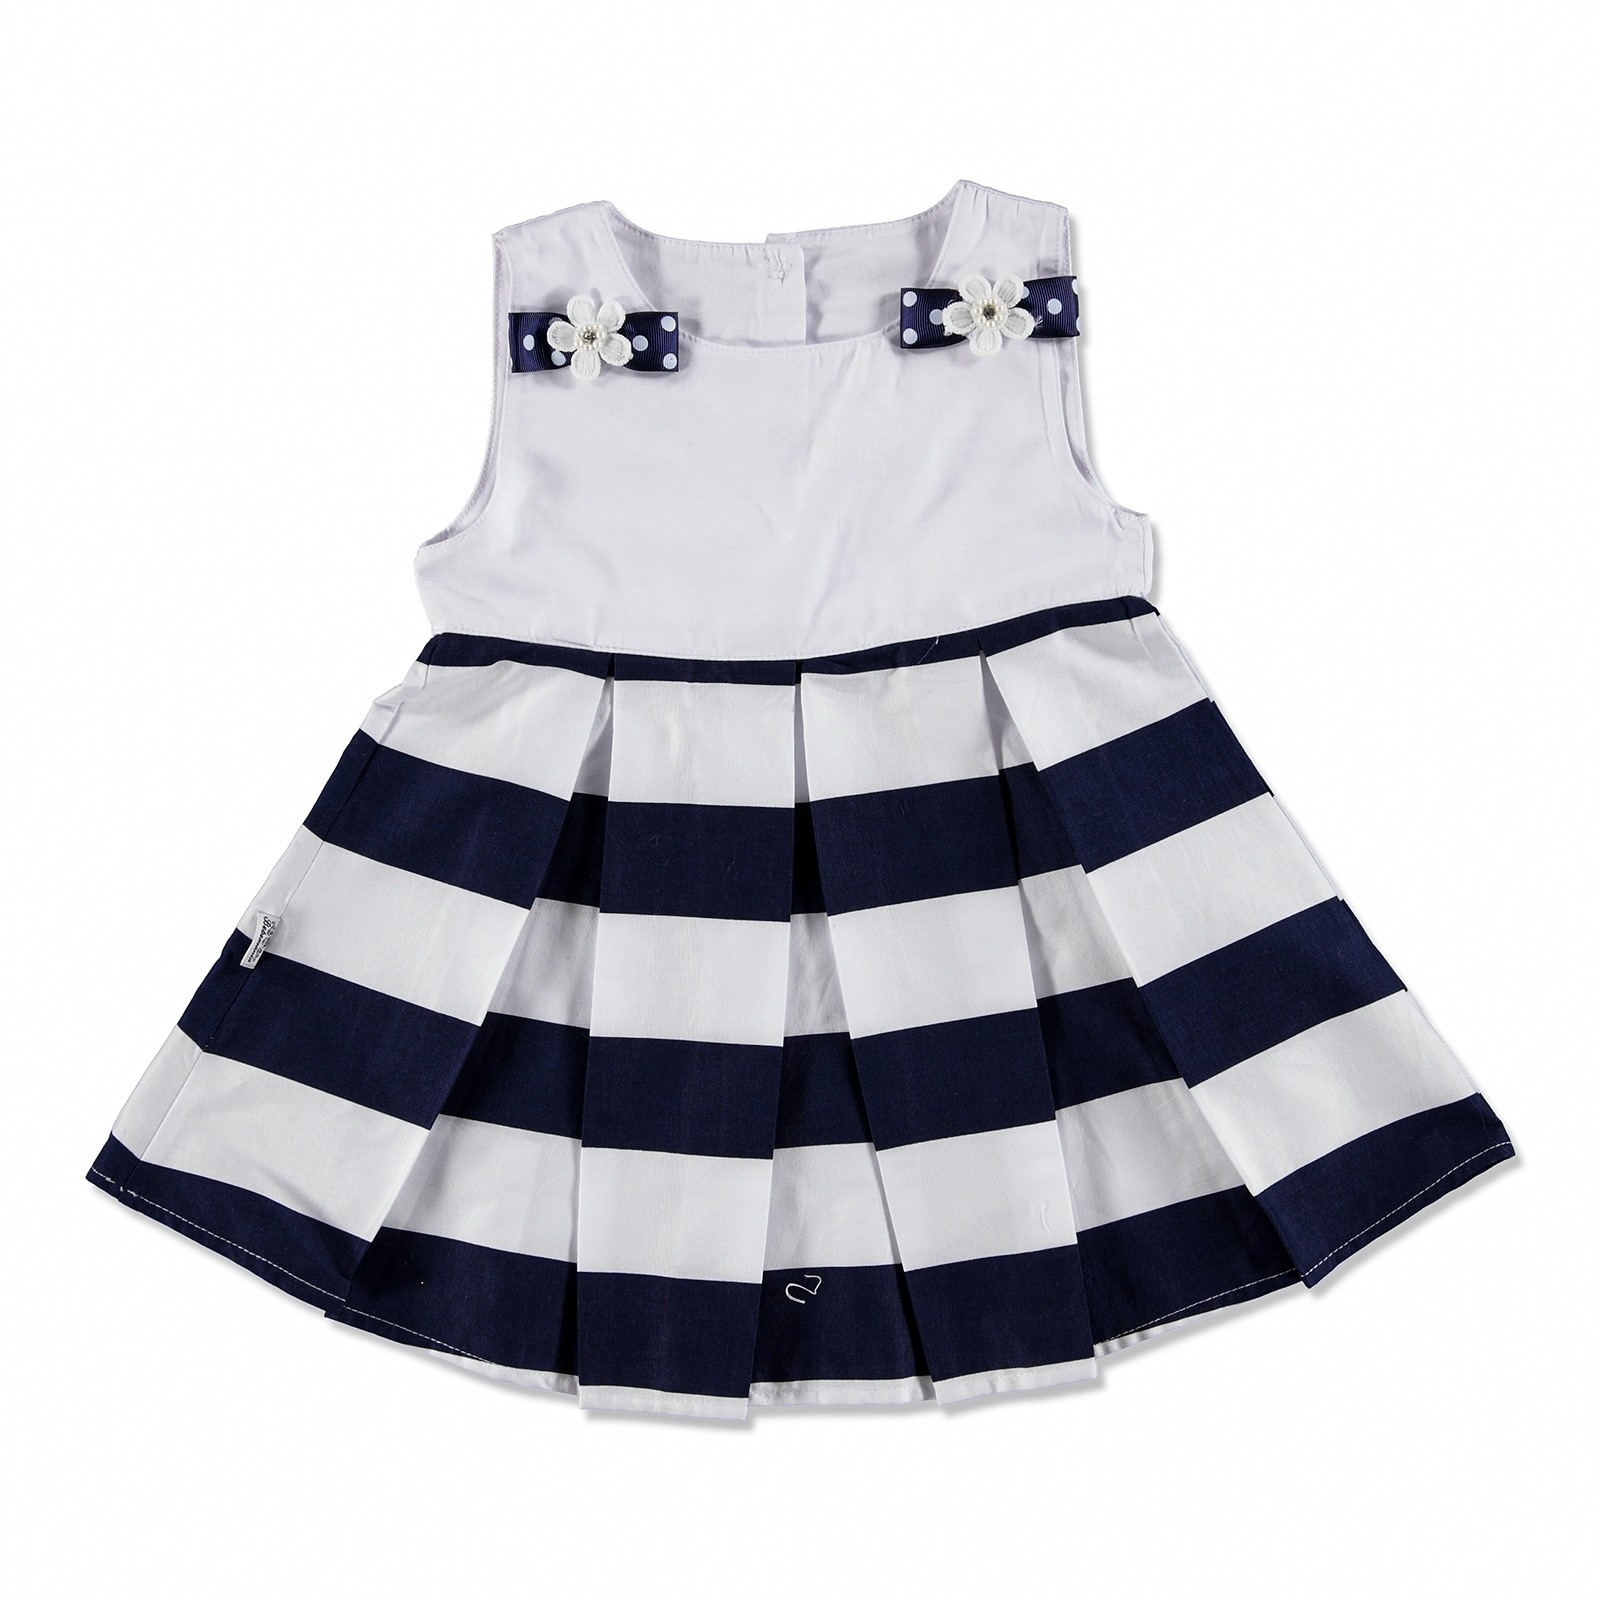 Ebebek Bebemania Summer Baby Girl Chic Blue Dress